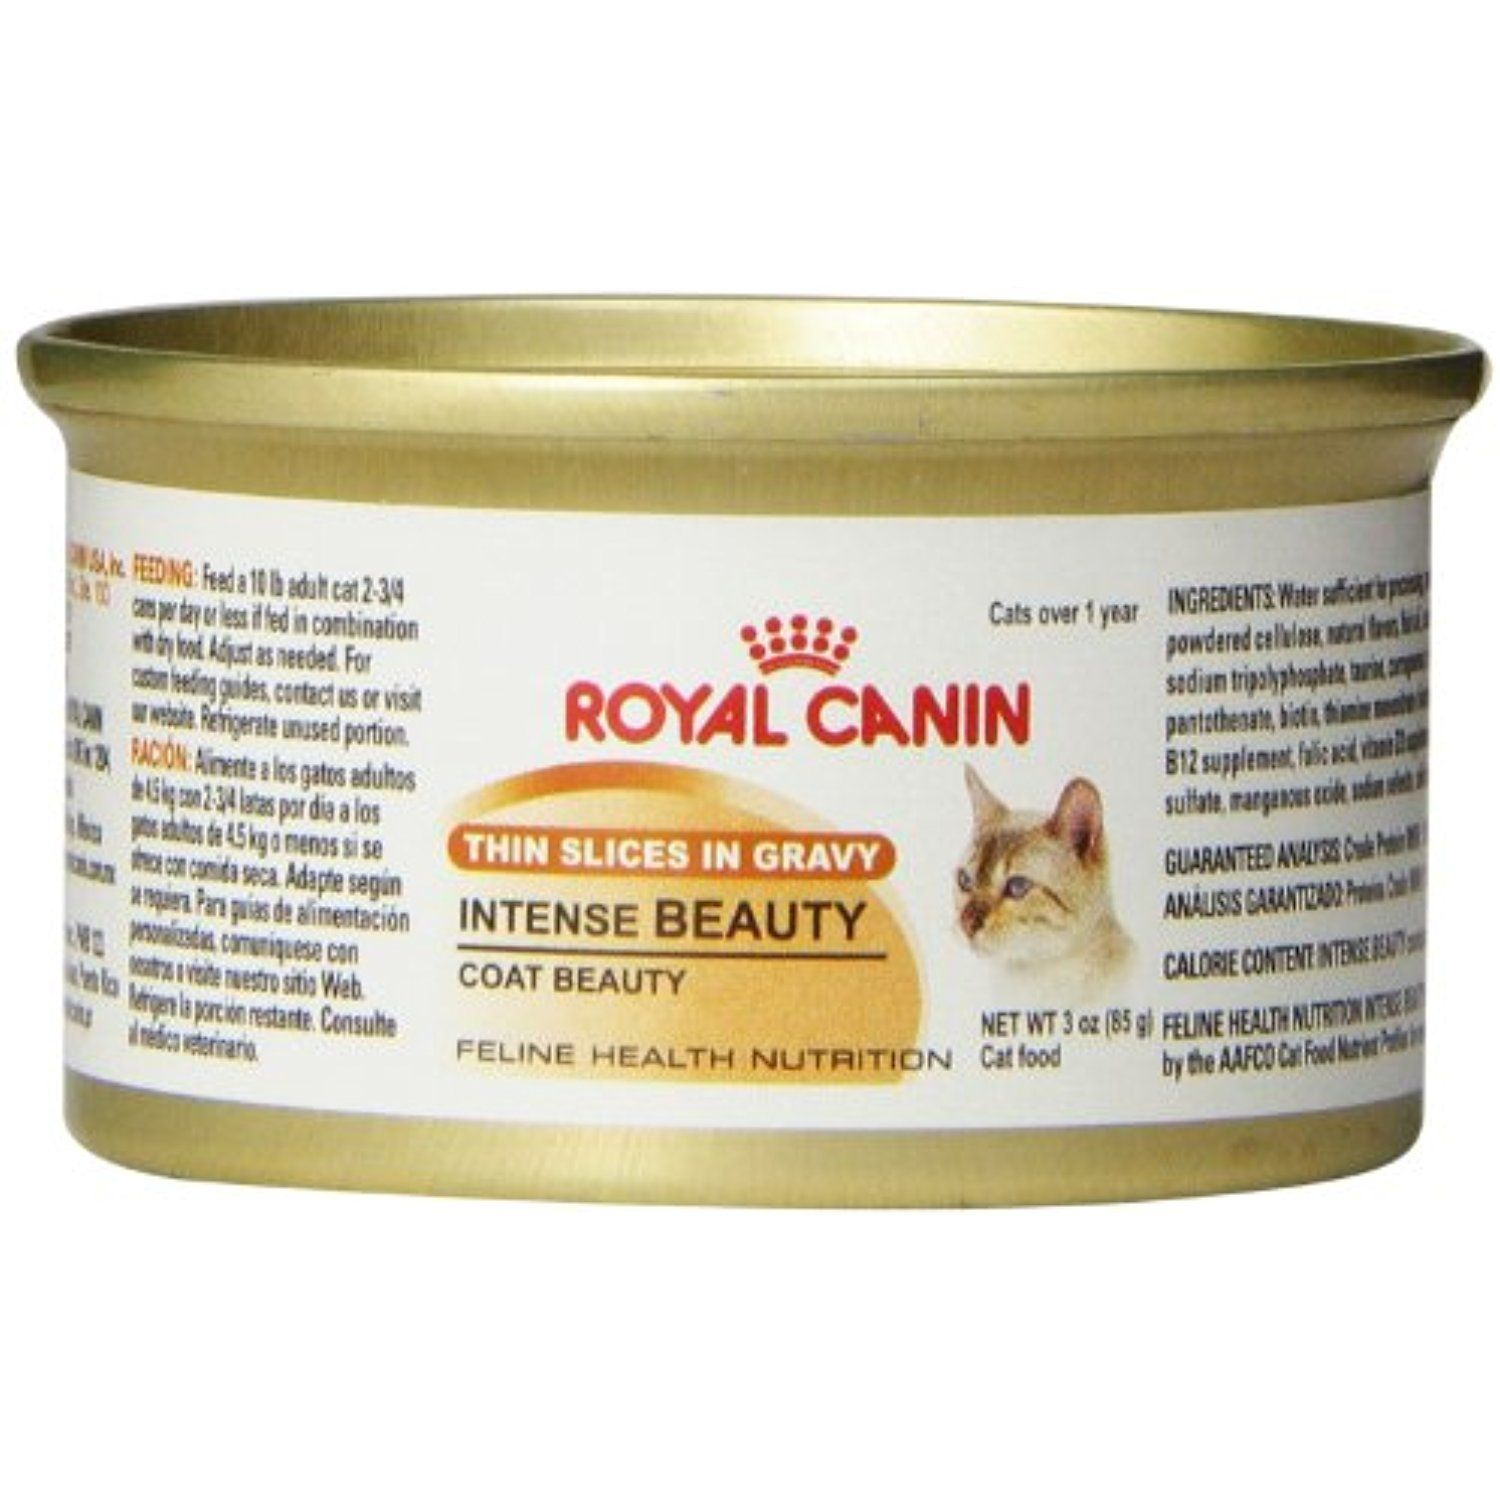 Royal Canin Canned Cat Food Intense Beauty Thin Slices In Gravy Pack Of 24 3 Ounce Cans Read More Reviews Of Canned Cat Food Feline Health Wet Cat Food